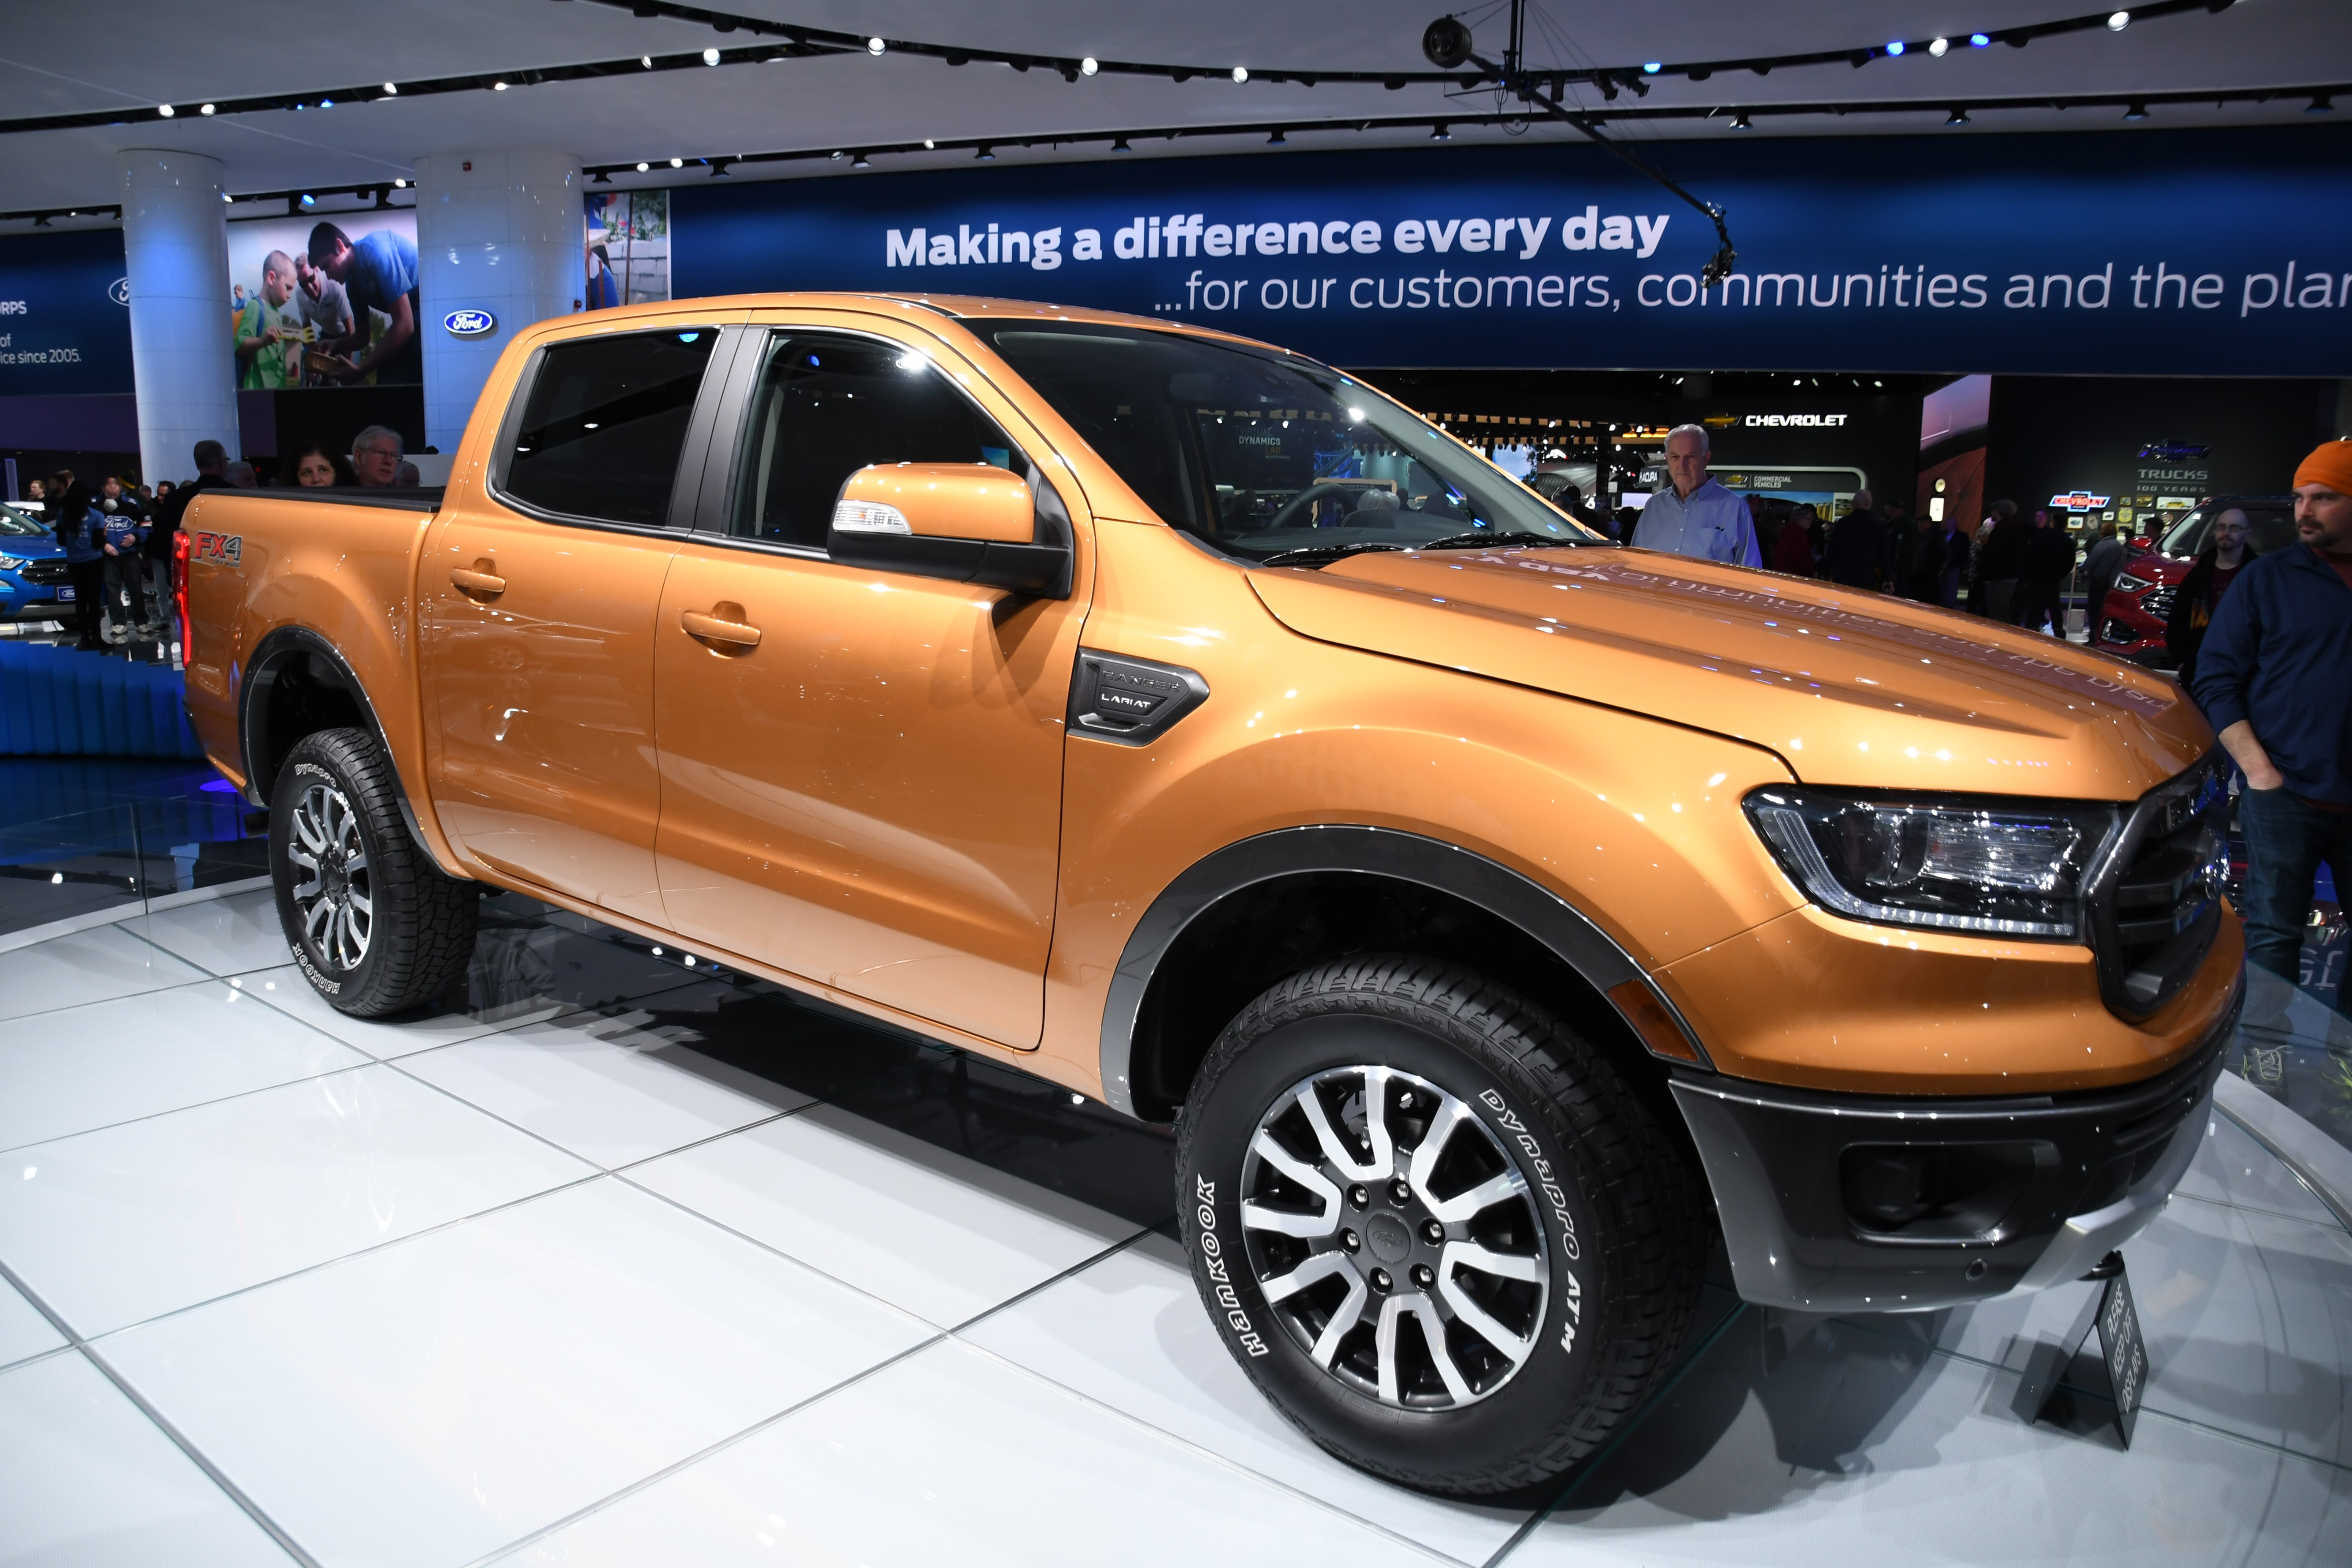 Ford Ranger (Americas) - The complete information and online